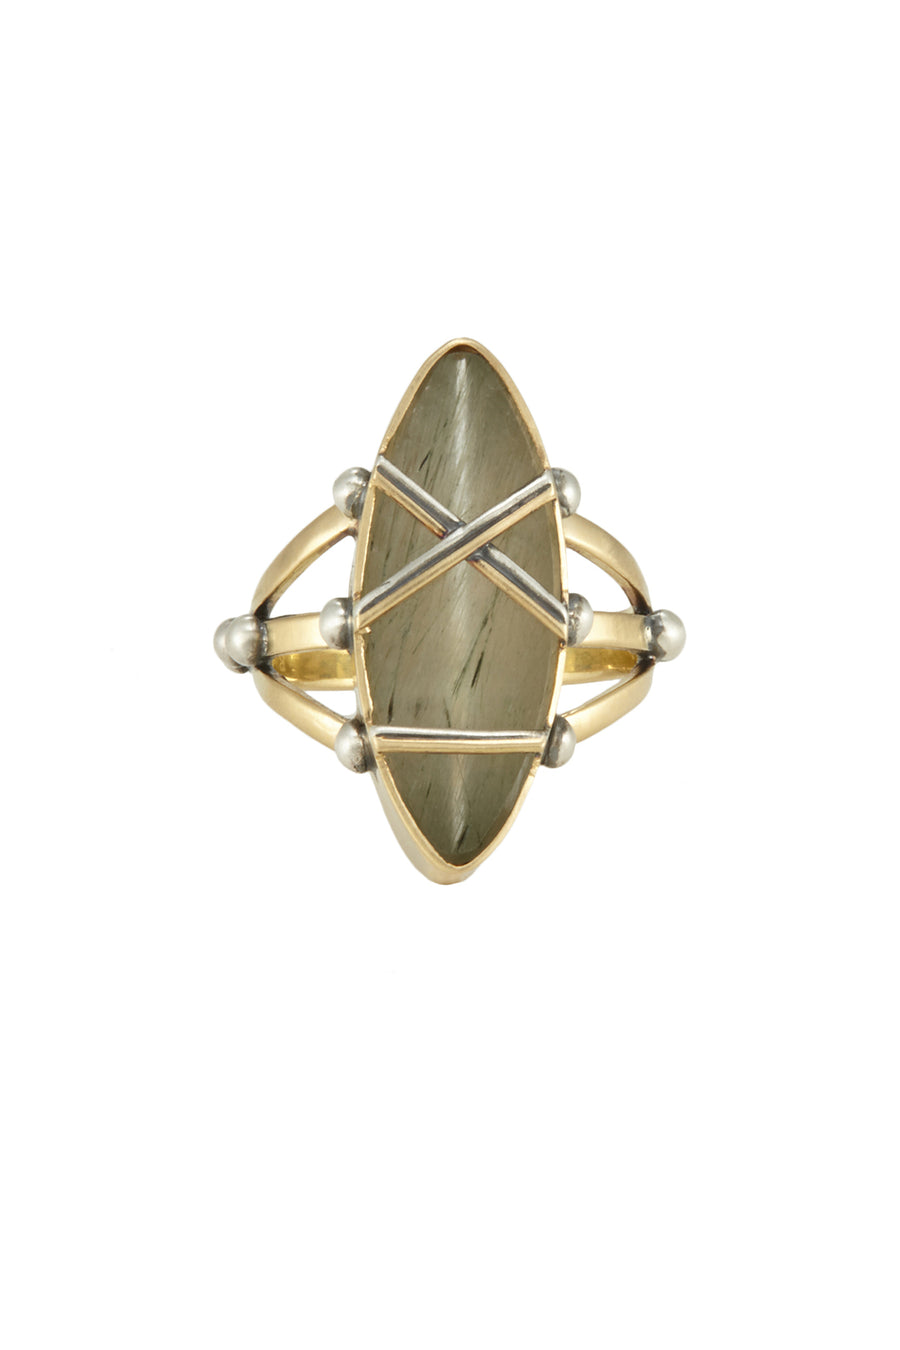 SHIBARI RING TOURMALINATED QUARTZ NAVETTE